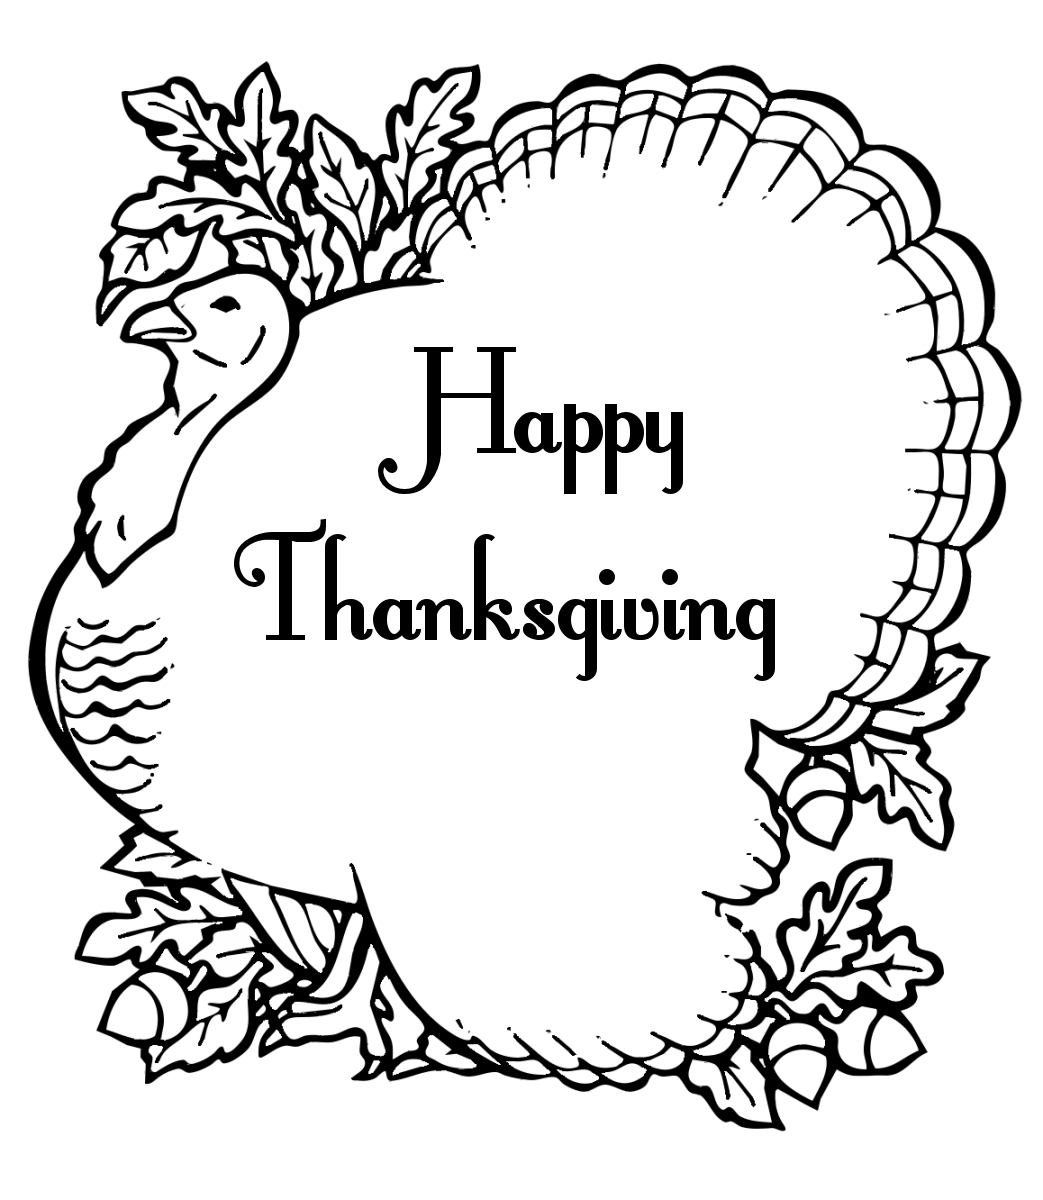 Thanksgiving 2016 Black And White Clipart.